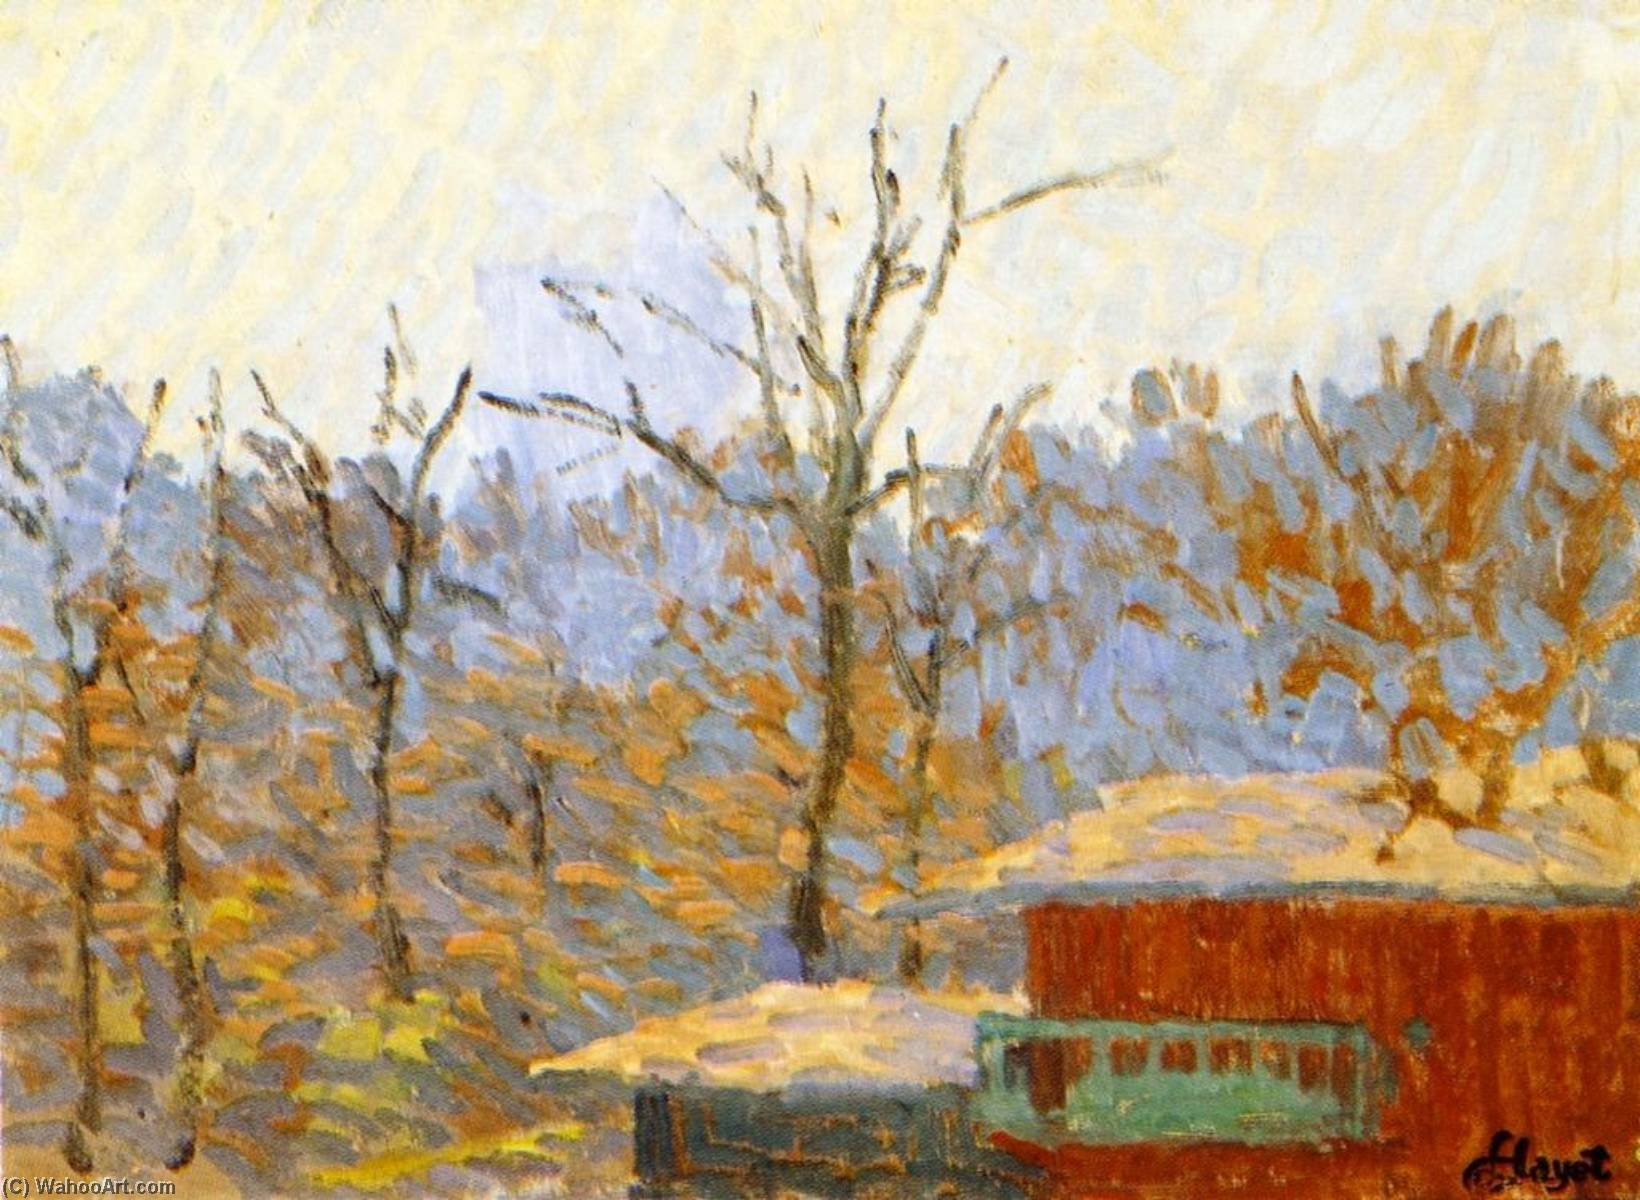 Order Art Reproduction : Landscape with Cabin, 1892 by Louis Hayet (1864-1940) | WahooArt.com